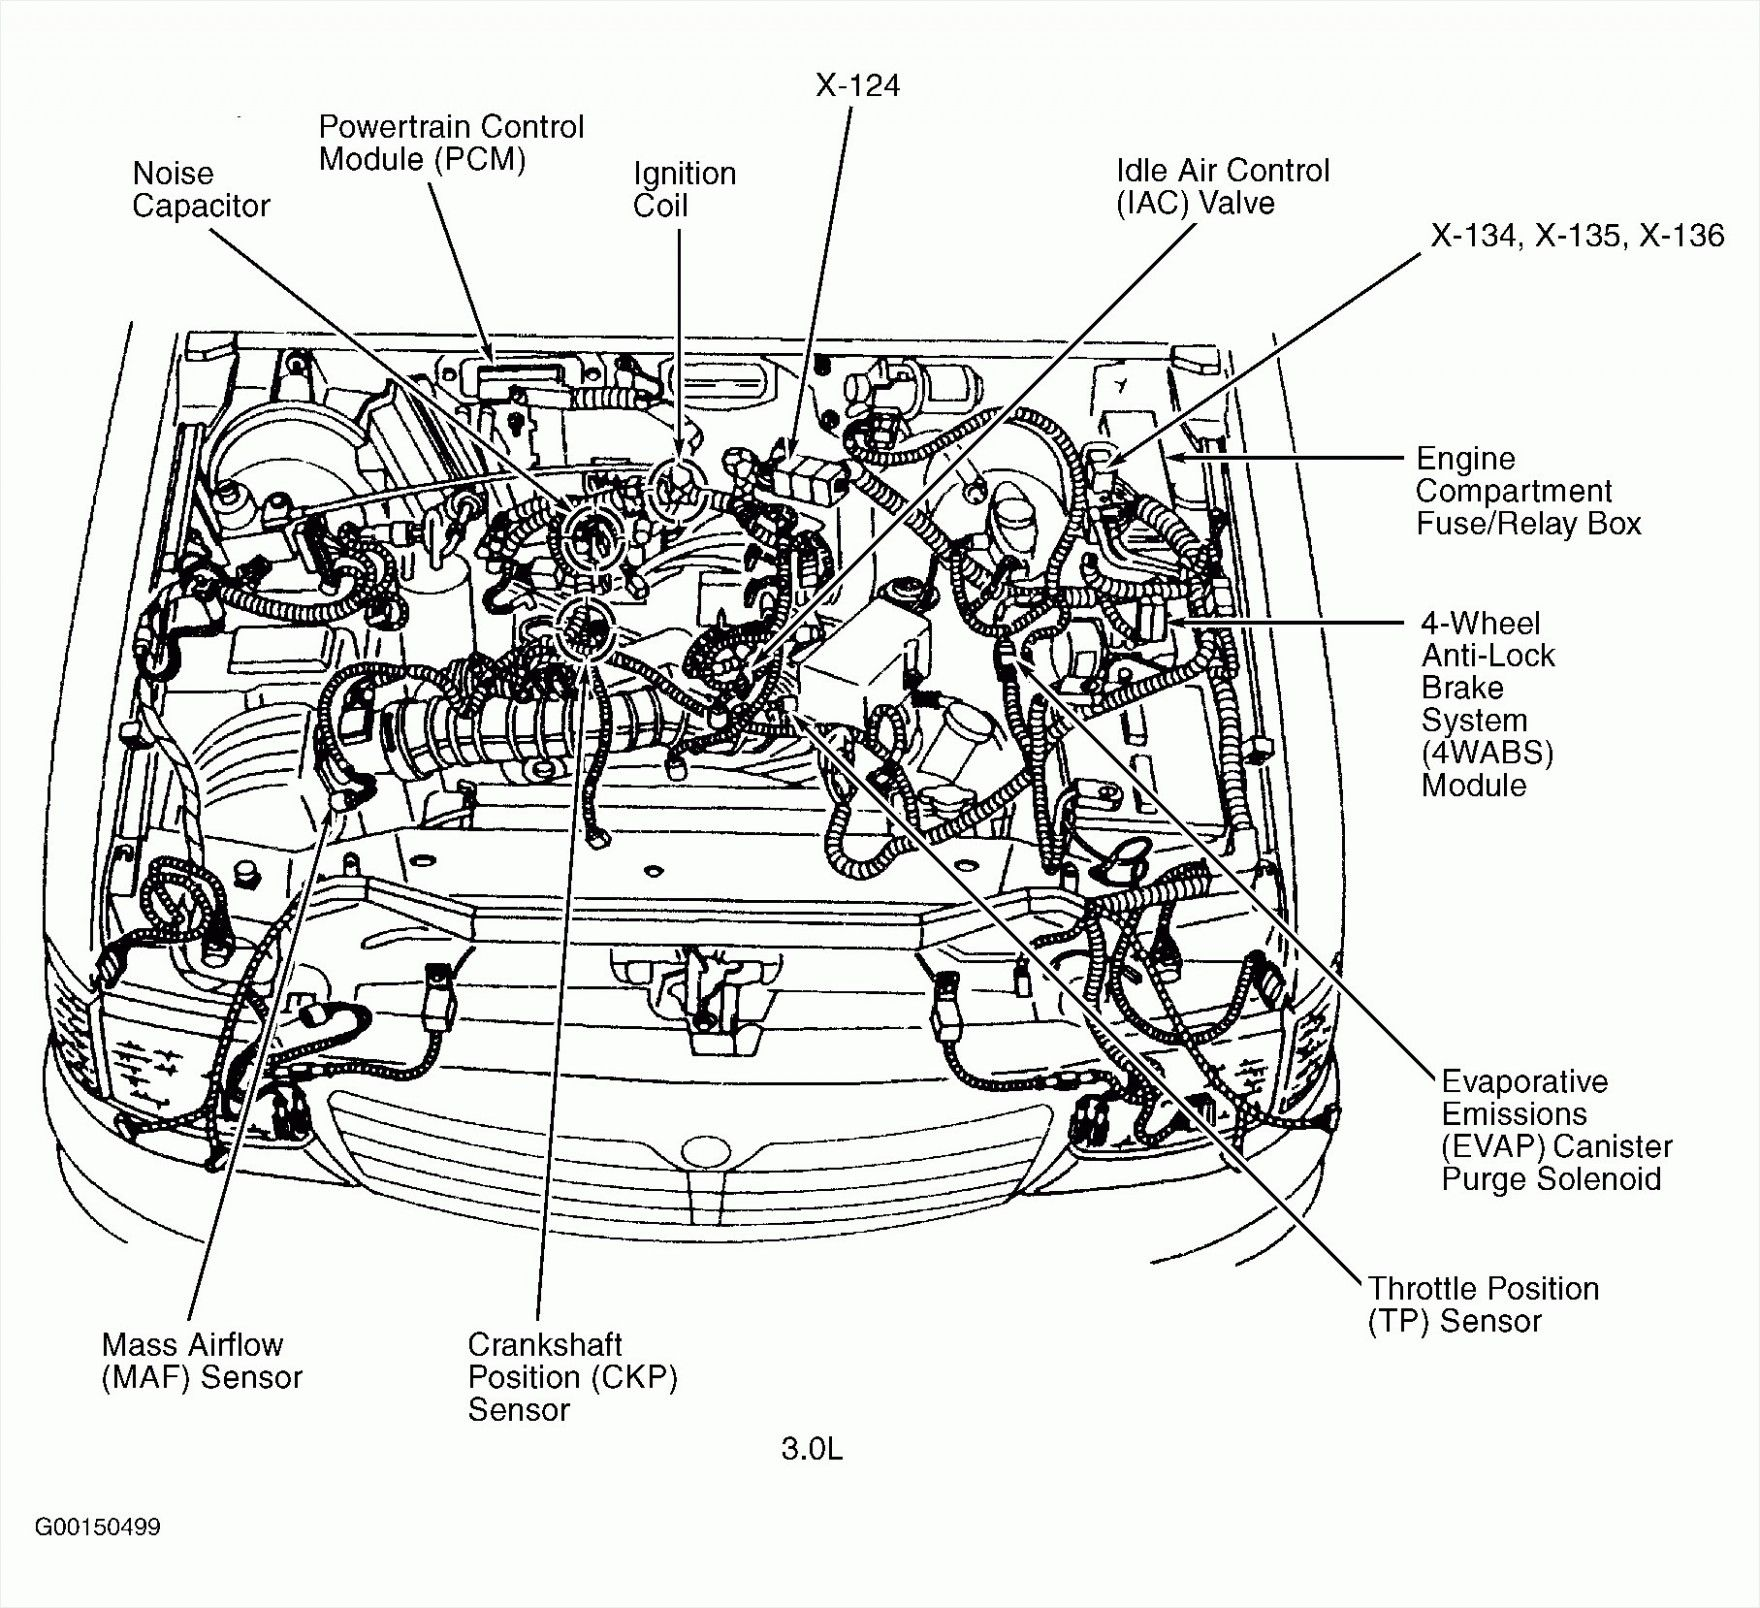 Pw7 Engine Diagram Adalah Pw7 Engine Diagram Adalah Pw50 Engine Diagram Adalah Delightful For You To My Own Weblog In This T Di 2020 Taurus Ford Diagram